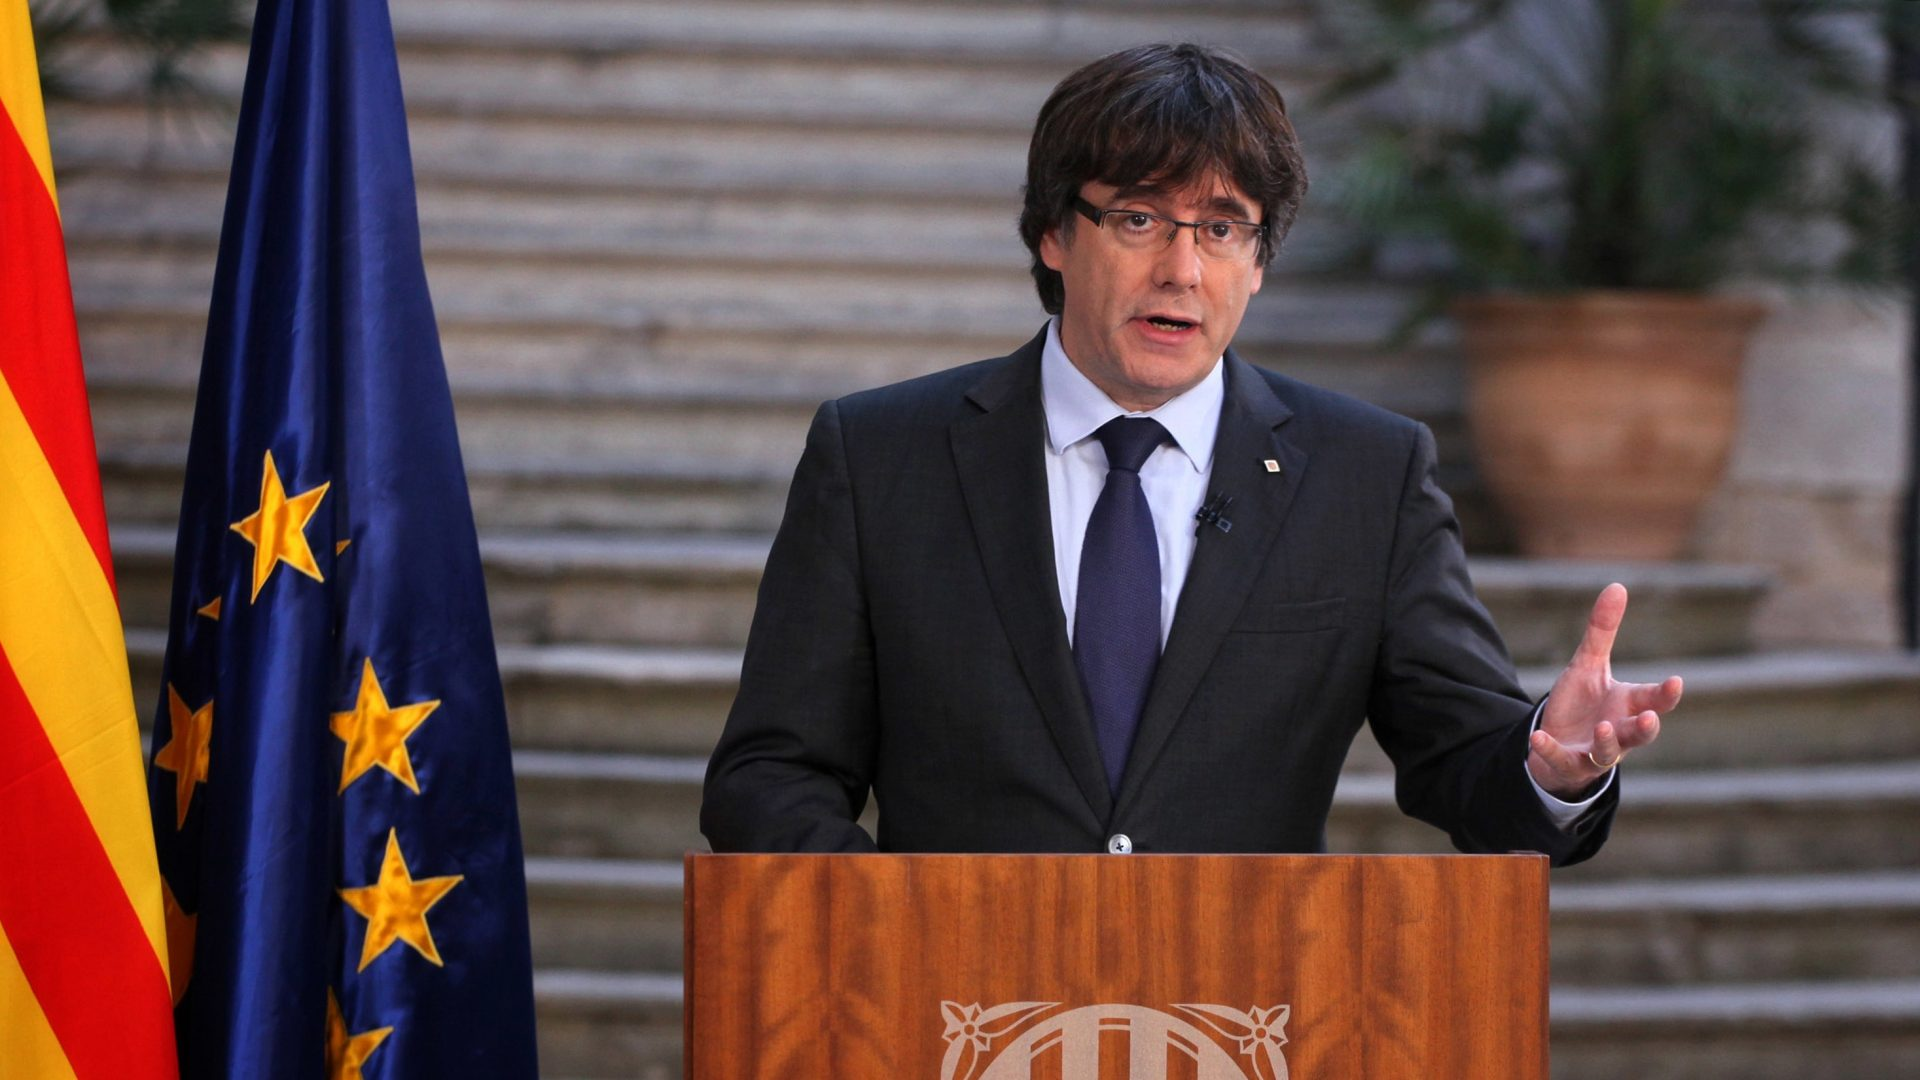 Spain attempts to issue international arrest warrant for ousted Catalan President